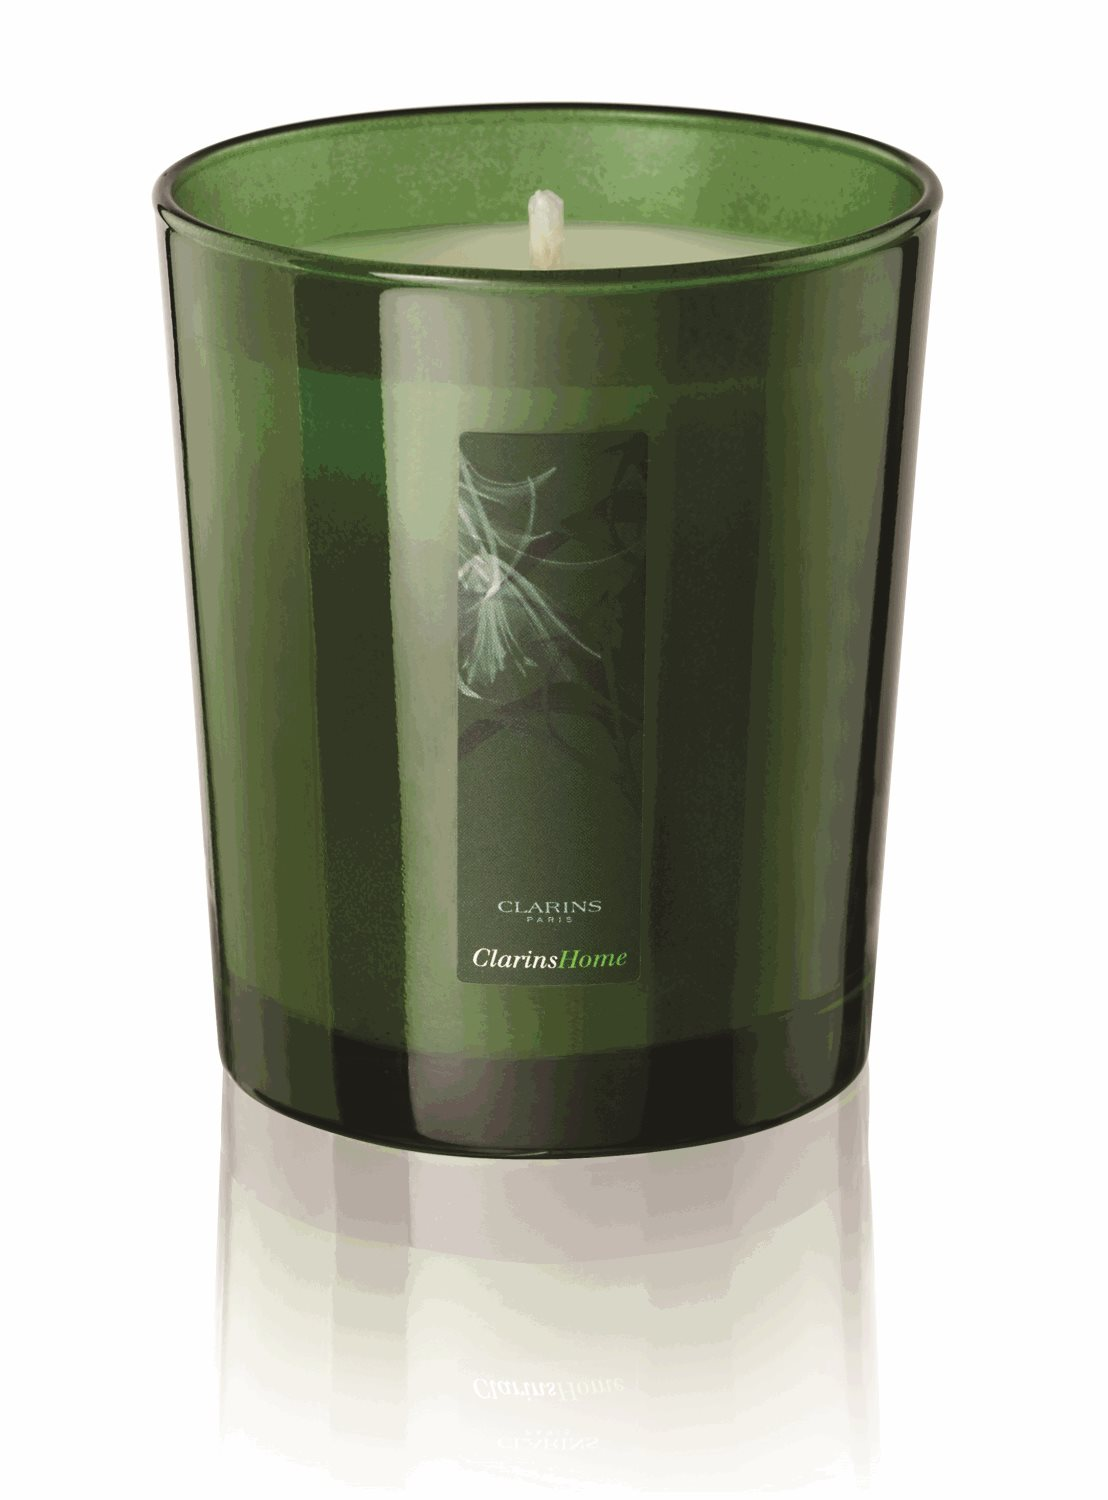 Receive a complimentary Clarins Home Candle worth £26